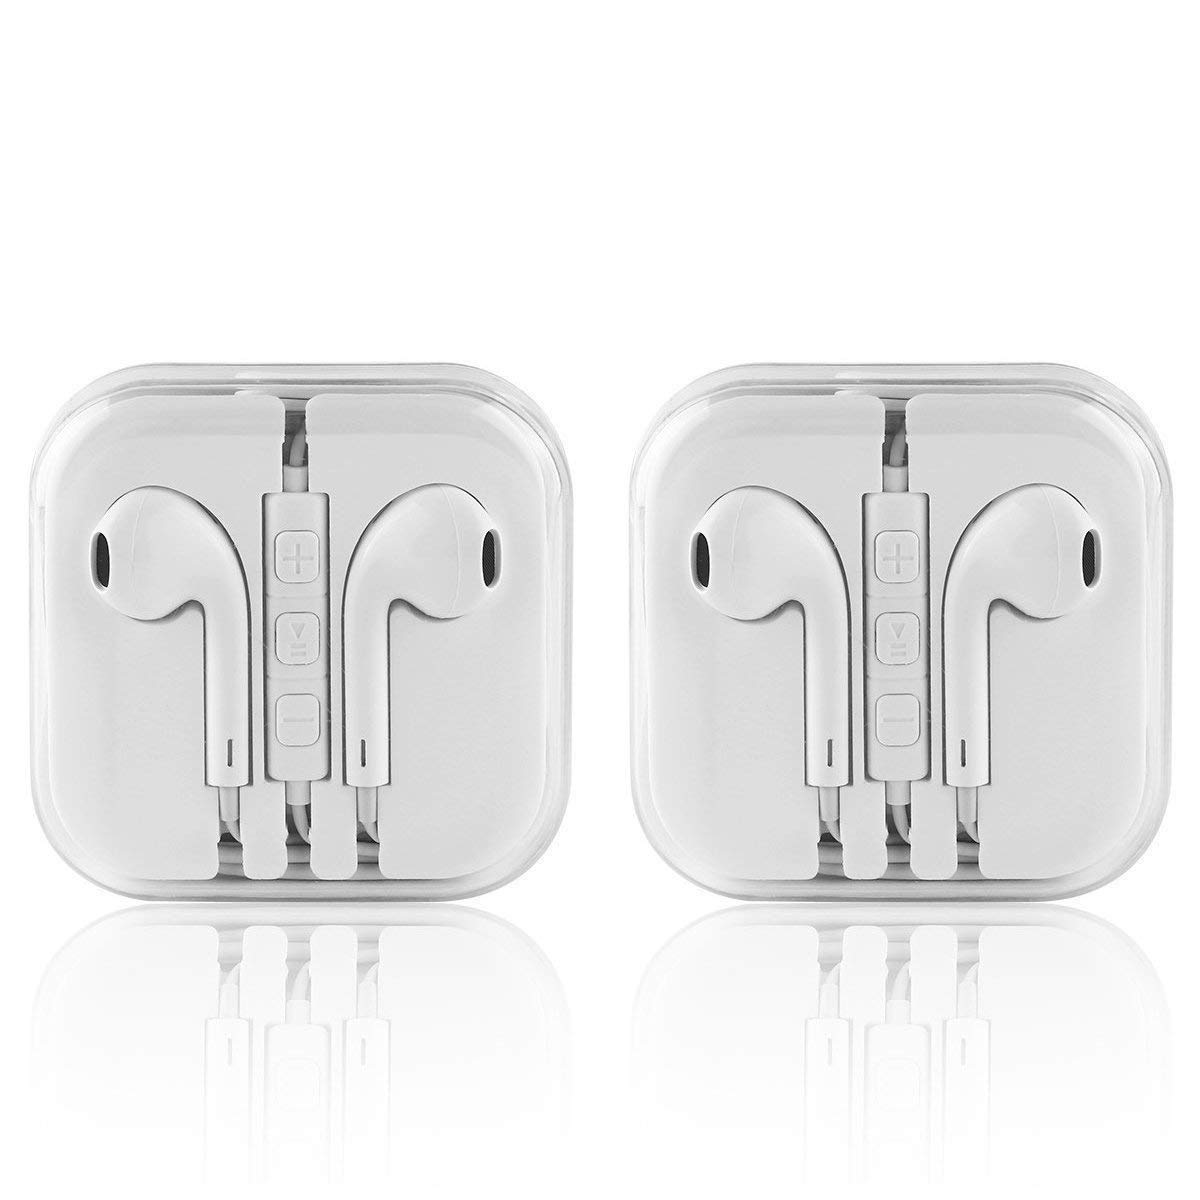 Apple Earbuds, Earphones Wired with Mic and Remote Control Fits Apple iPhone 6S Plus 6 SE 5S Samsung Galaxy S7 S6 Note 3 2 1/MP5 Player iOS Android,2 Pack